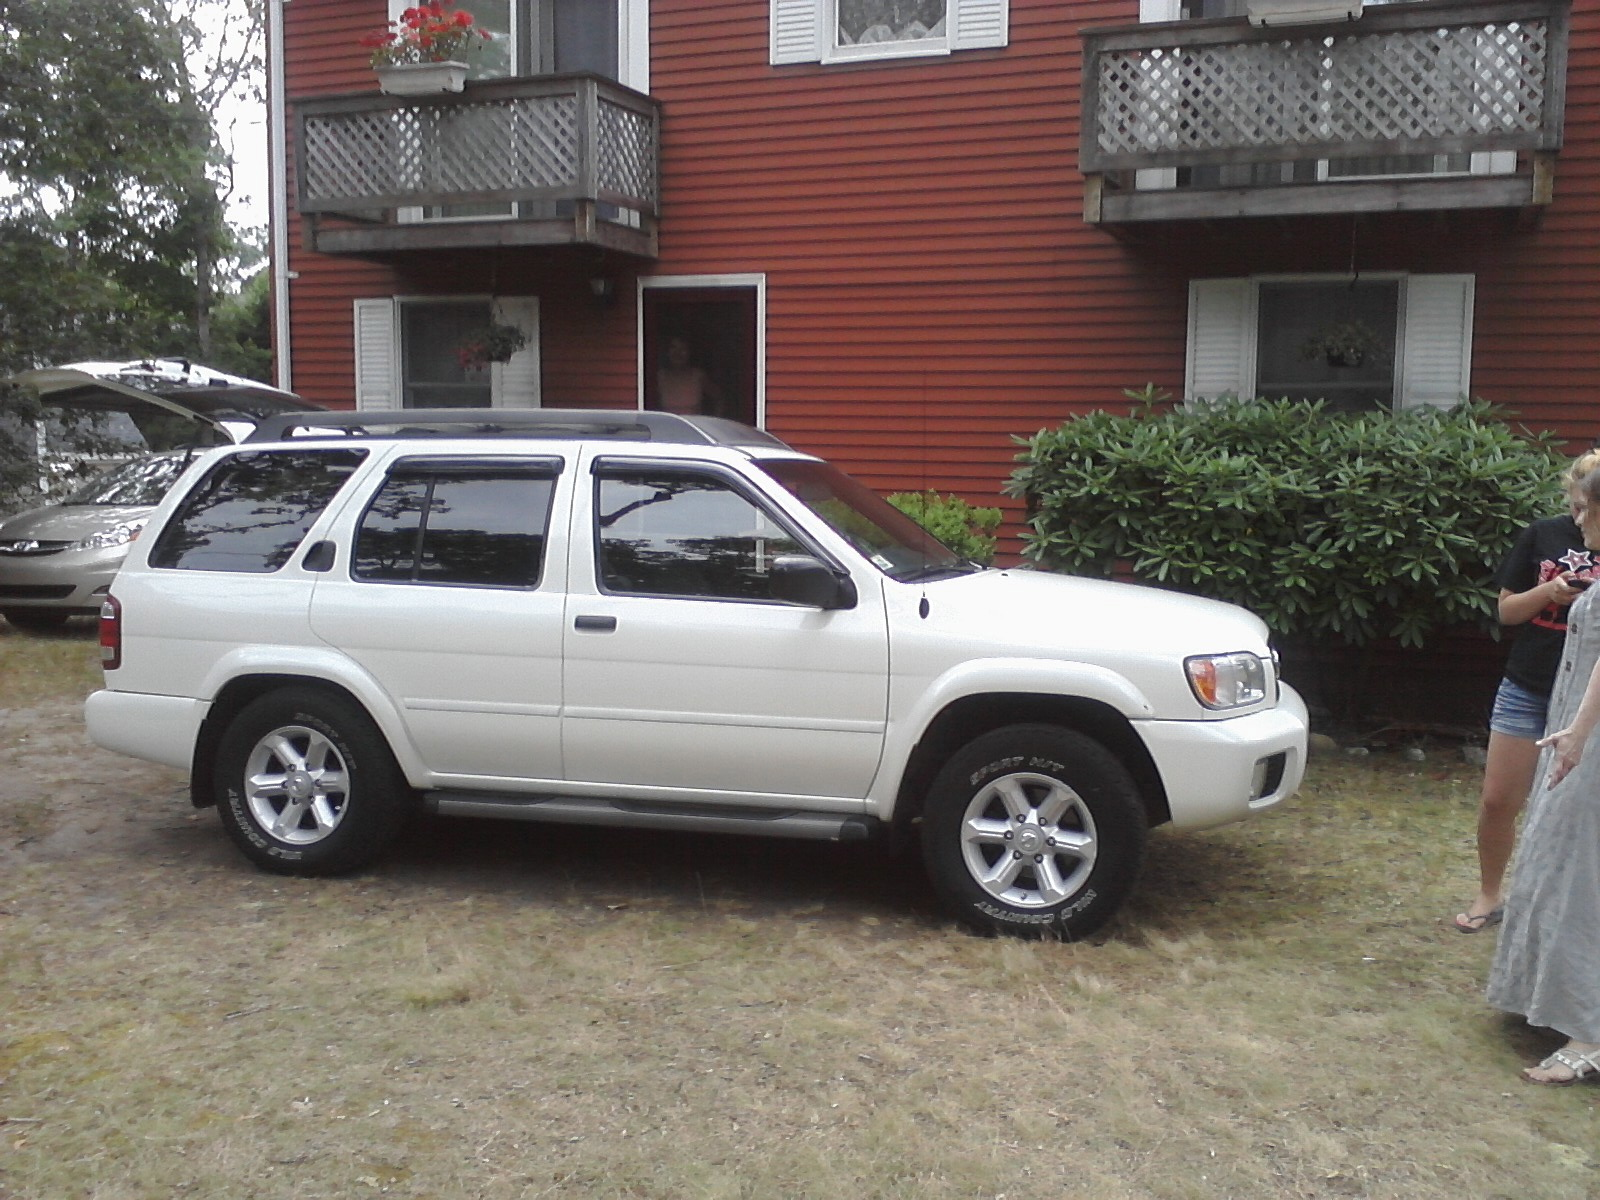 2003 Toyota Sequoia Towing Capacity >> Pathfinder Tow Capacity | Autos Post